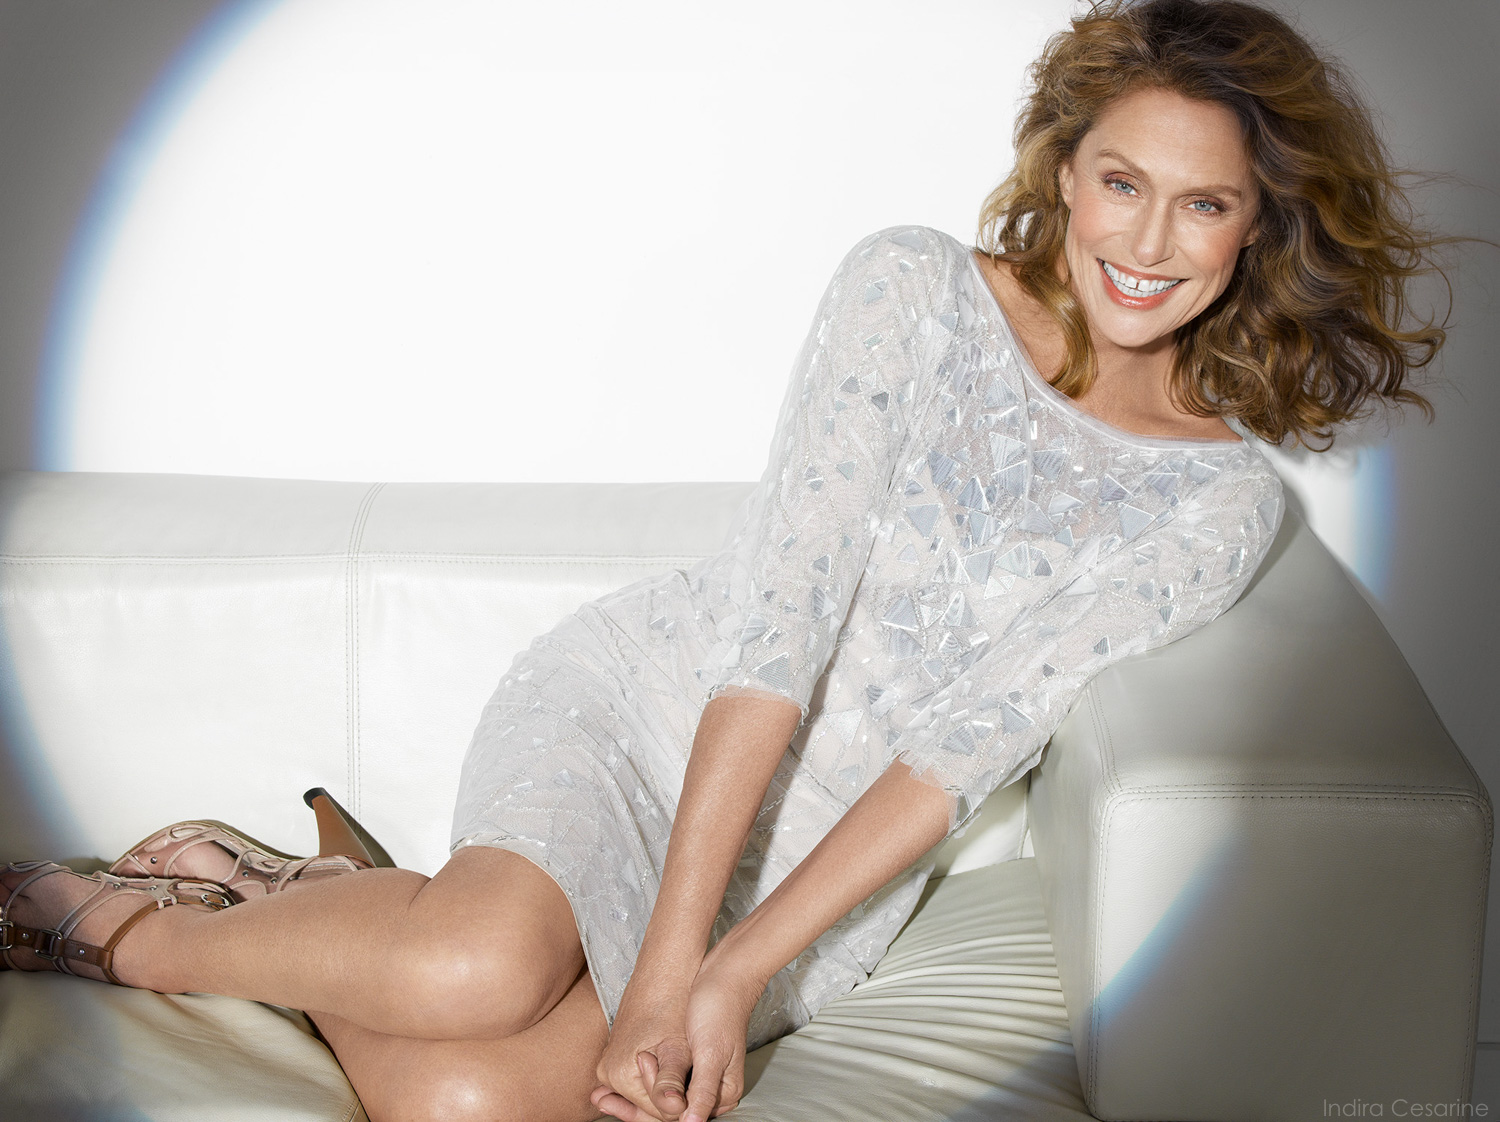 LAUREN-HUTTON-Photography-by-Indira-Cesarine-005.jpg